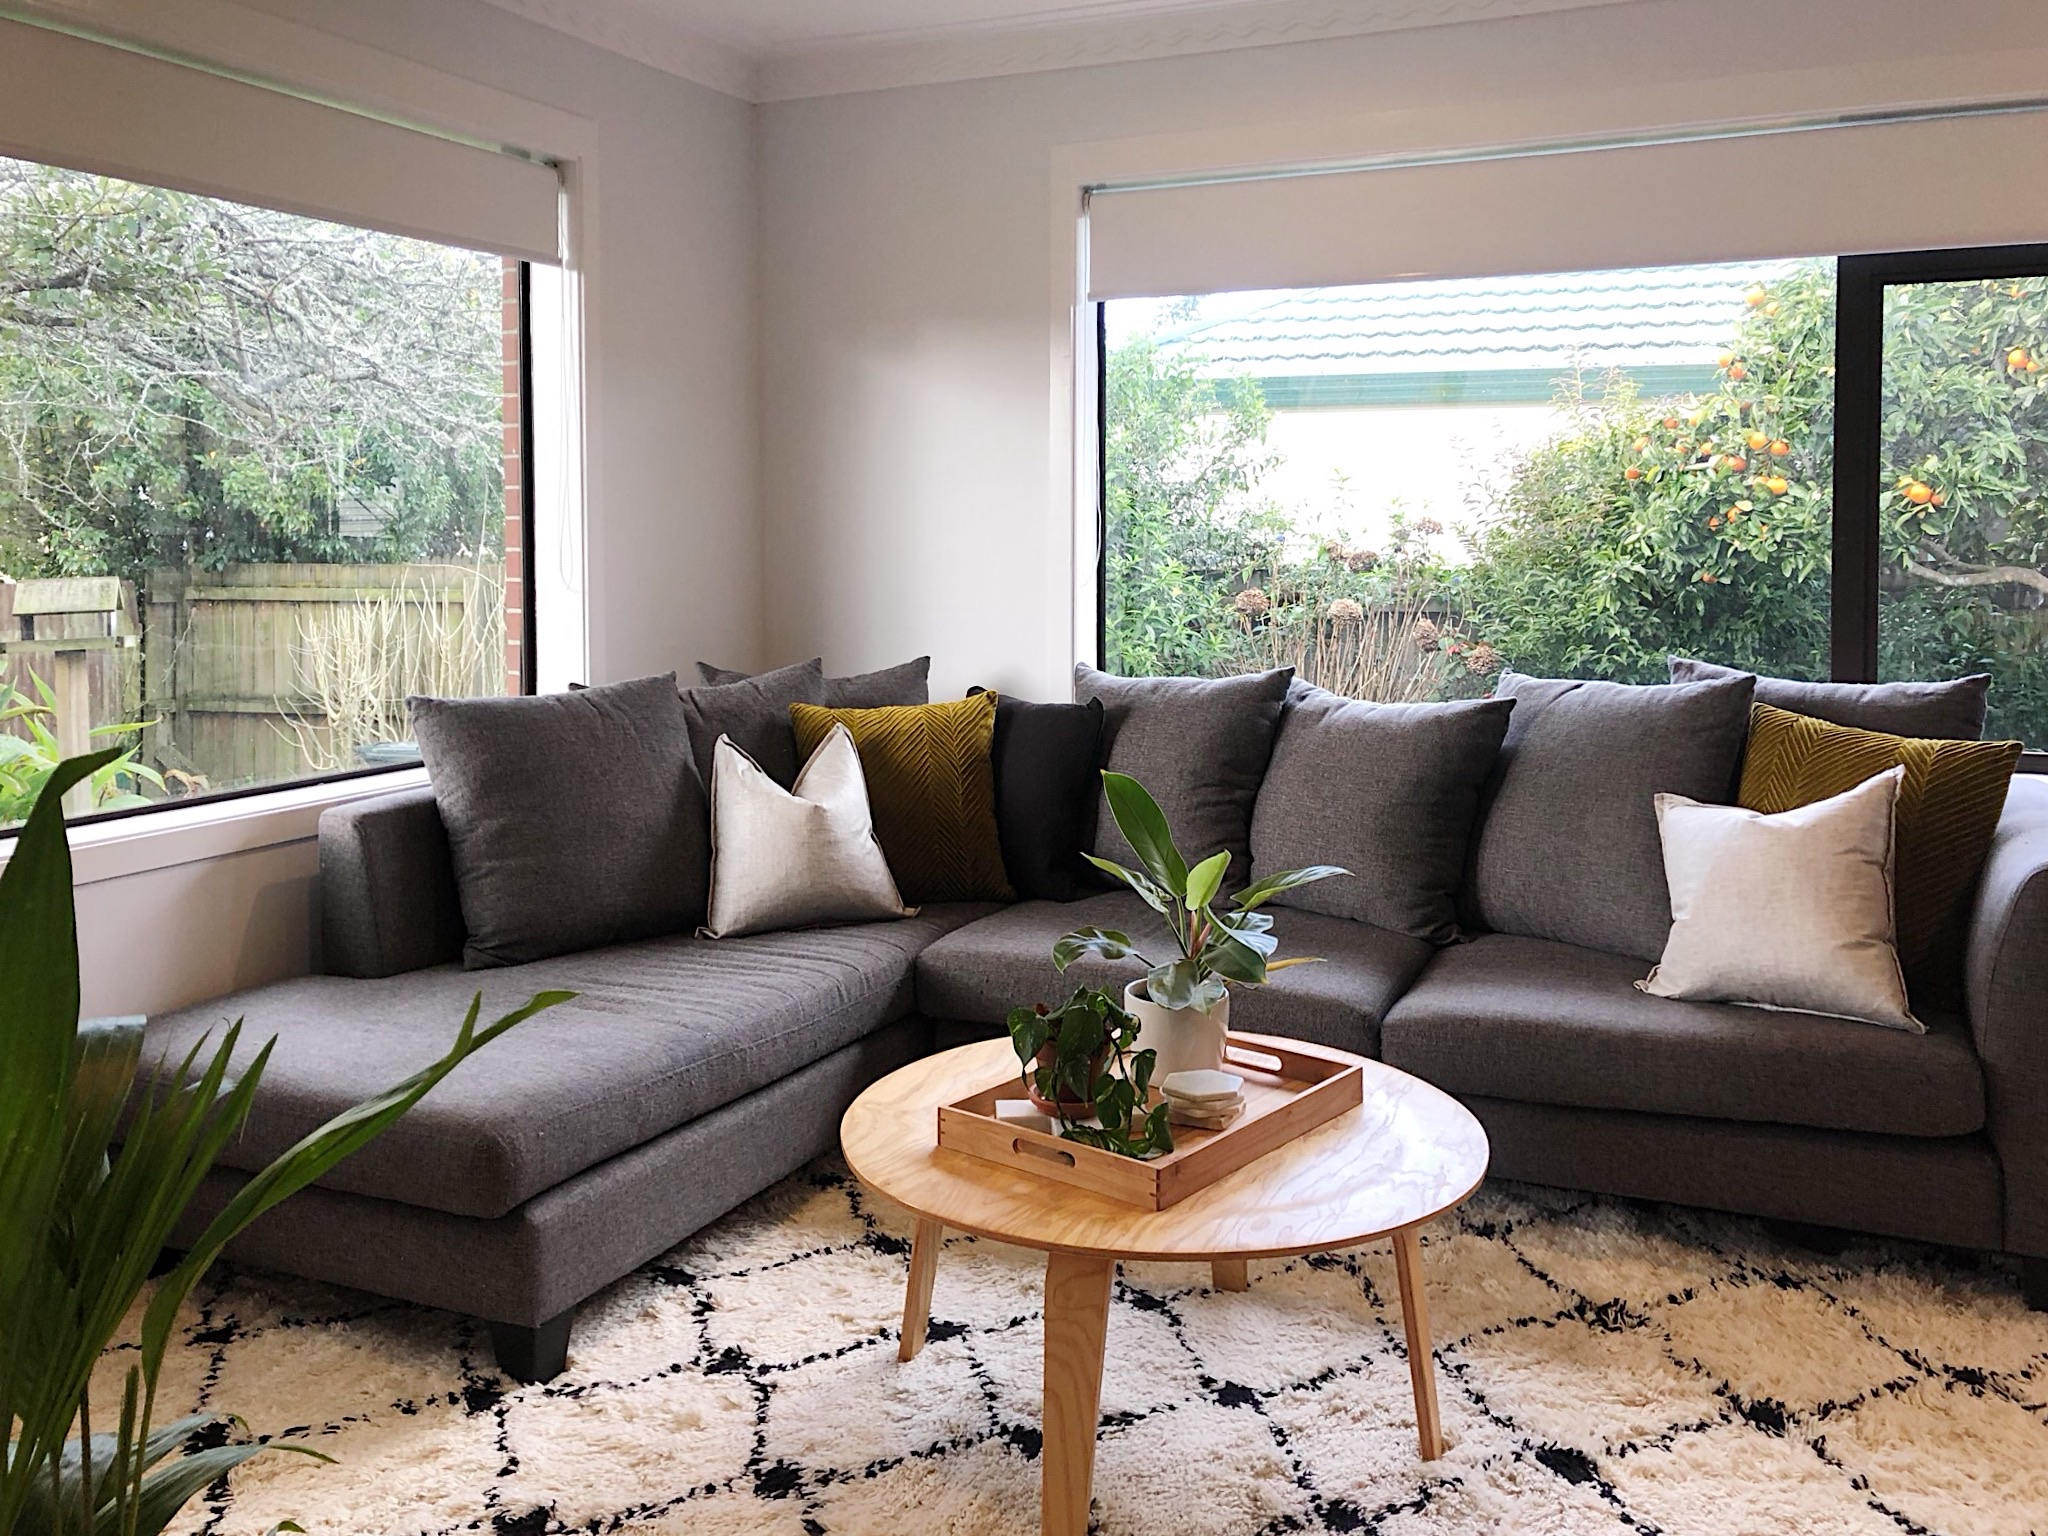 Pearson + Project The Reno Race The Rookies Lounge Tawa Floor Small Space  Lounge Plant TV Unit Couch.jpg